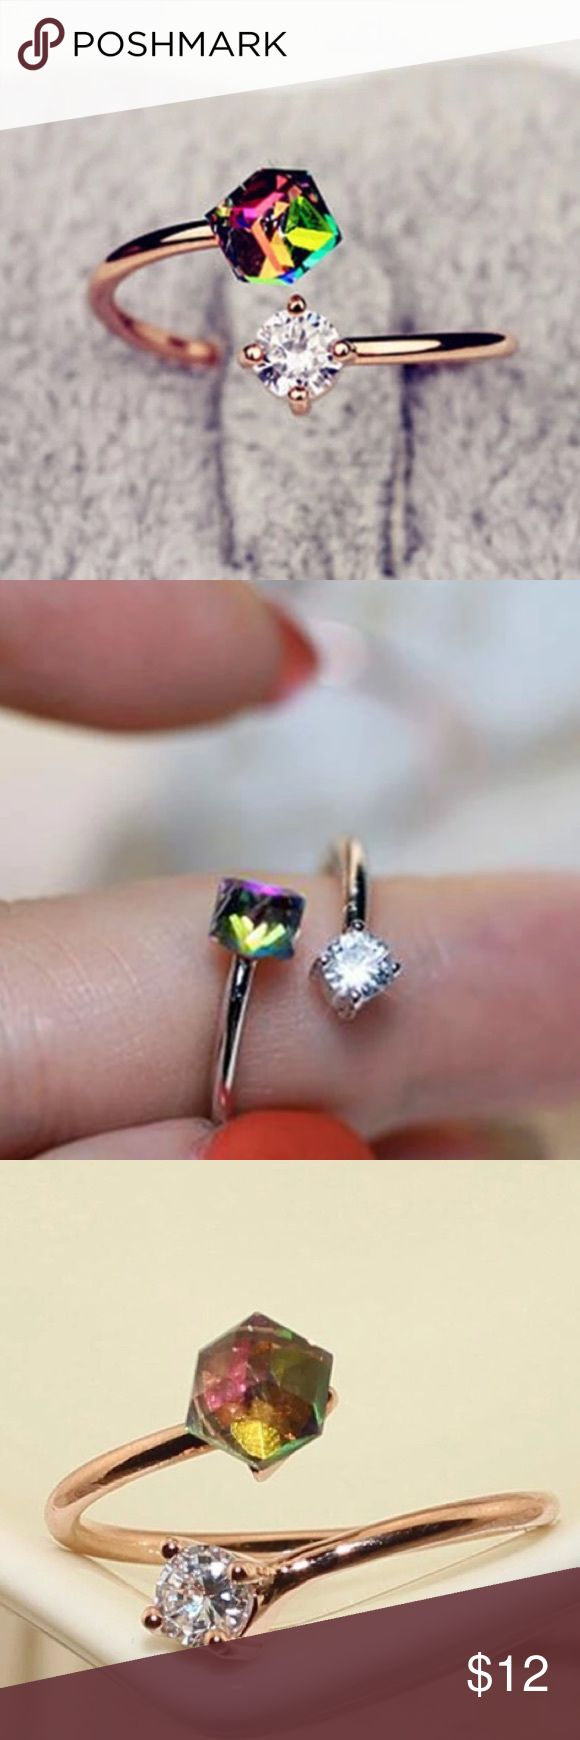 💍Cz Adjustable Ring💍 Cute Cubic Zirconia Adjustable Ring Jewelry Rings